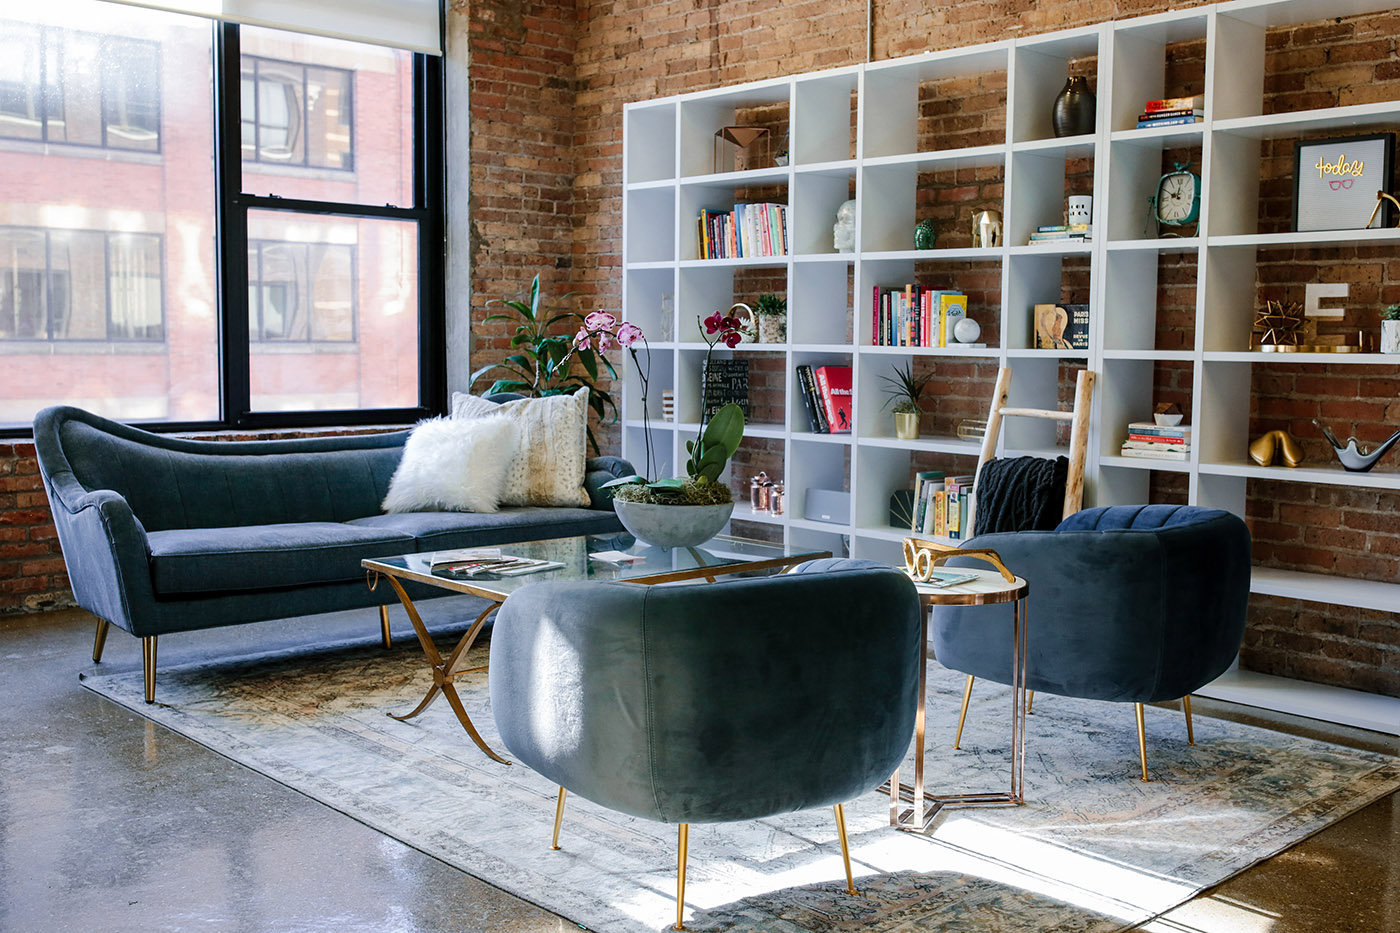 Evolveher Coworking Spaces in Chicago